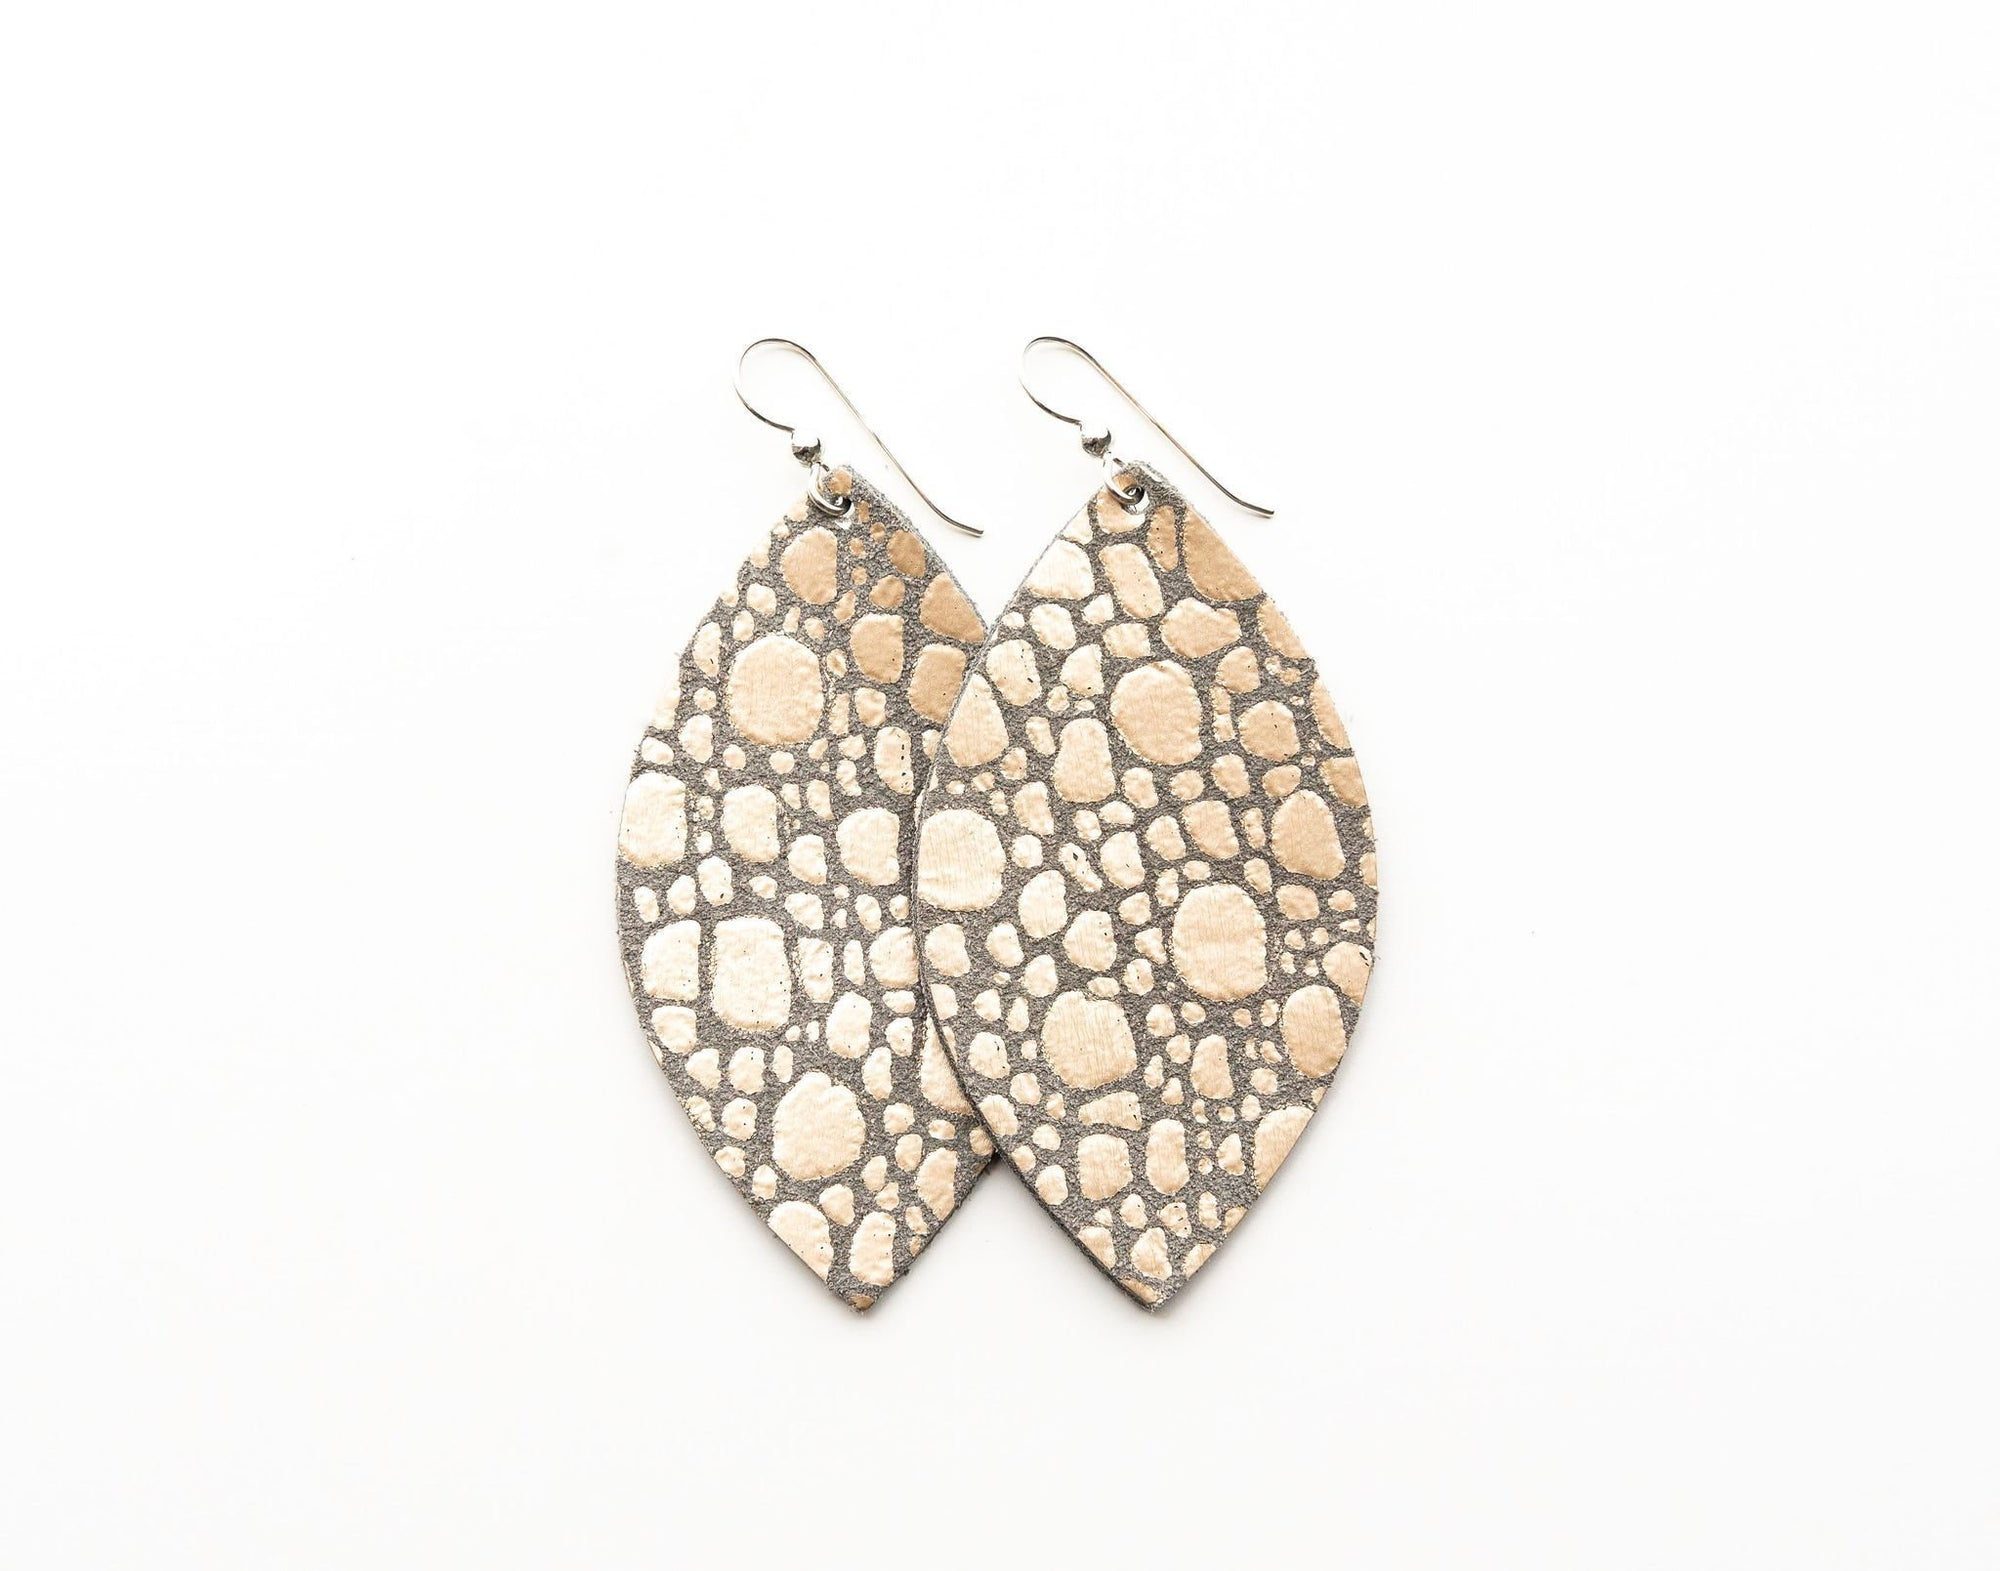 LEATHER EARRINGS - PEBBLE IN PLATINUM SILVER (SMALL) - Molly's! A Chic and Unique Boutique